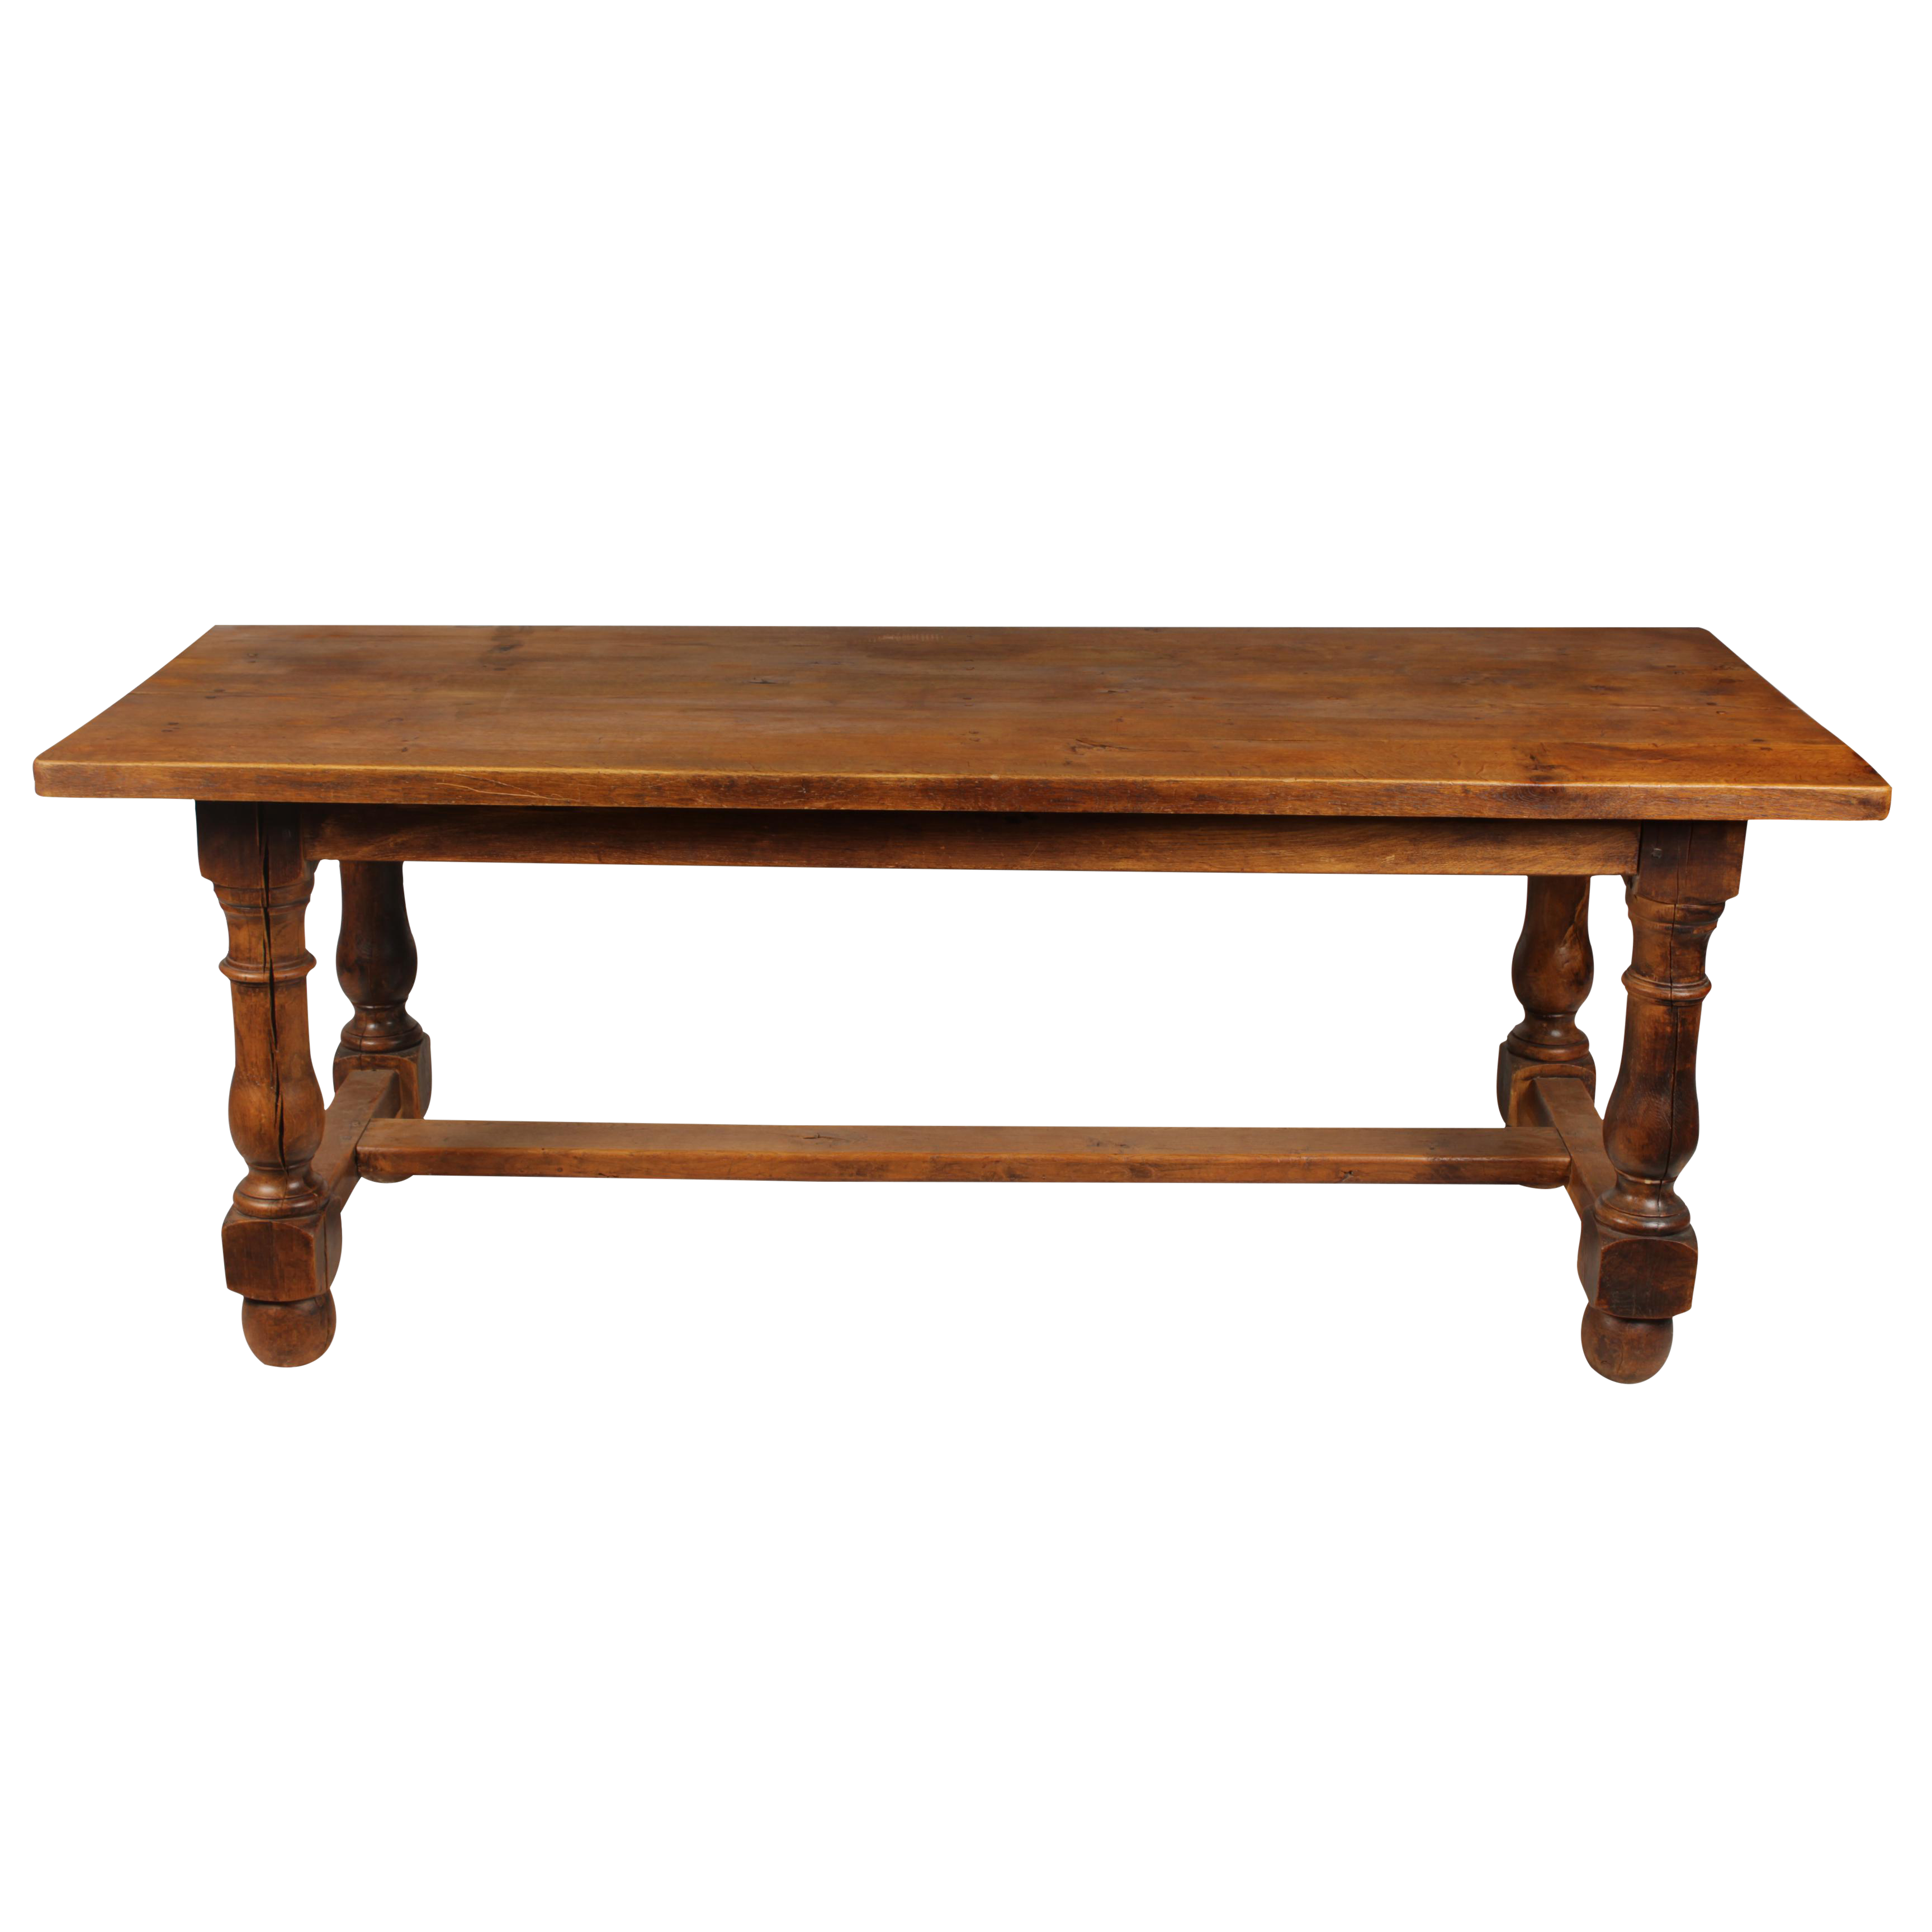 Vintage used baroque tables chairish baroque 1930s tavern dining table geotapseo Image collections